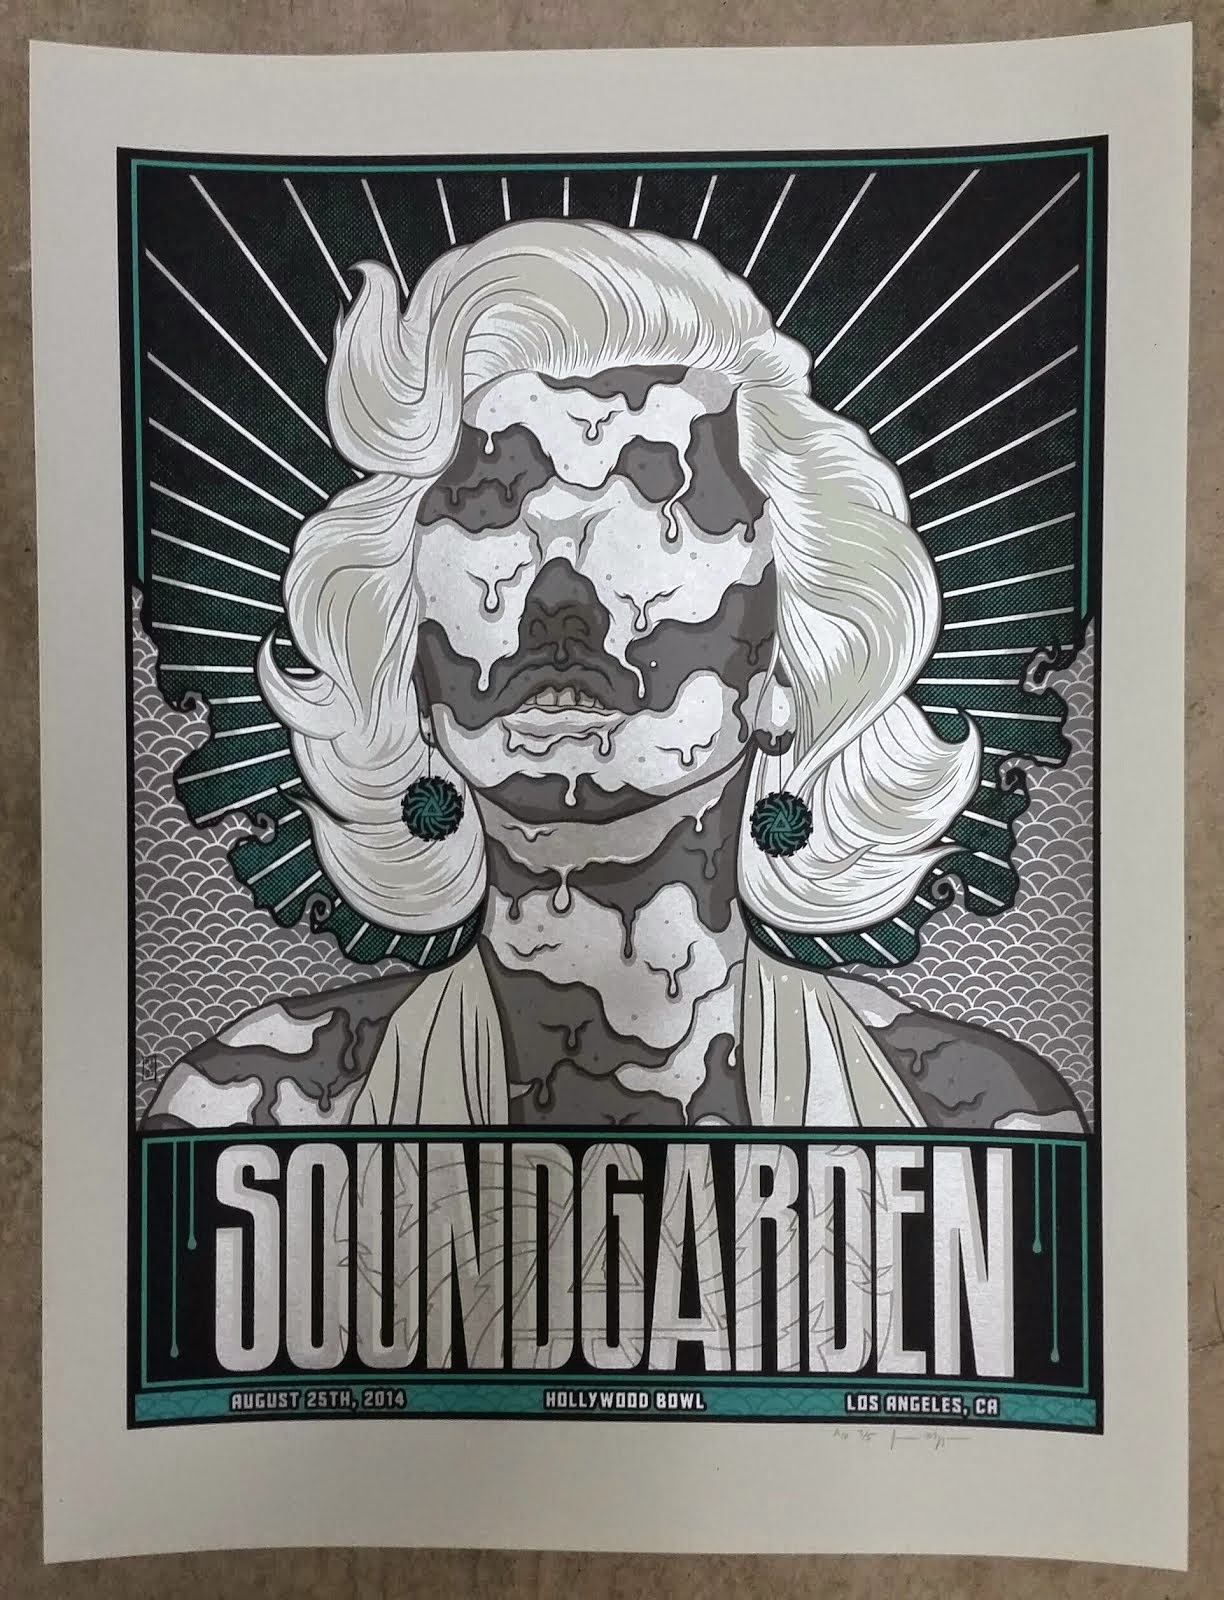 Jim Mazza Soundgarden Los Angeles Variant Free Friday Poster Giveaway